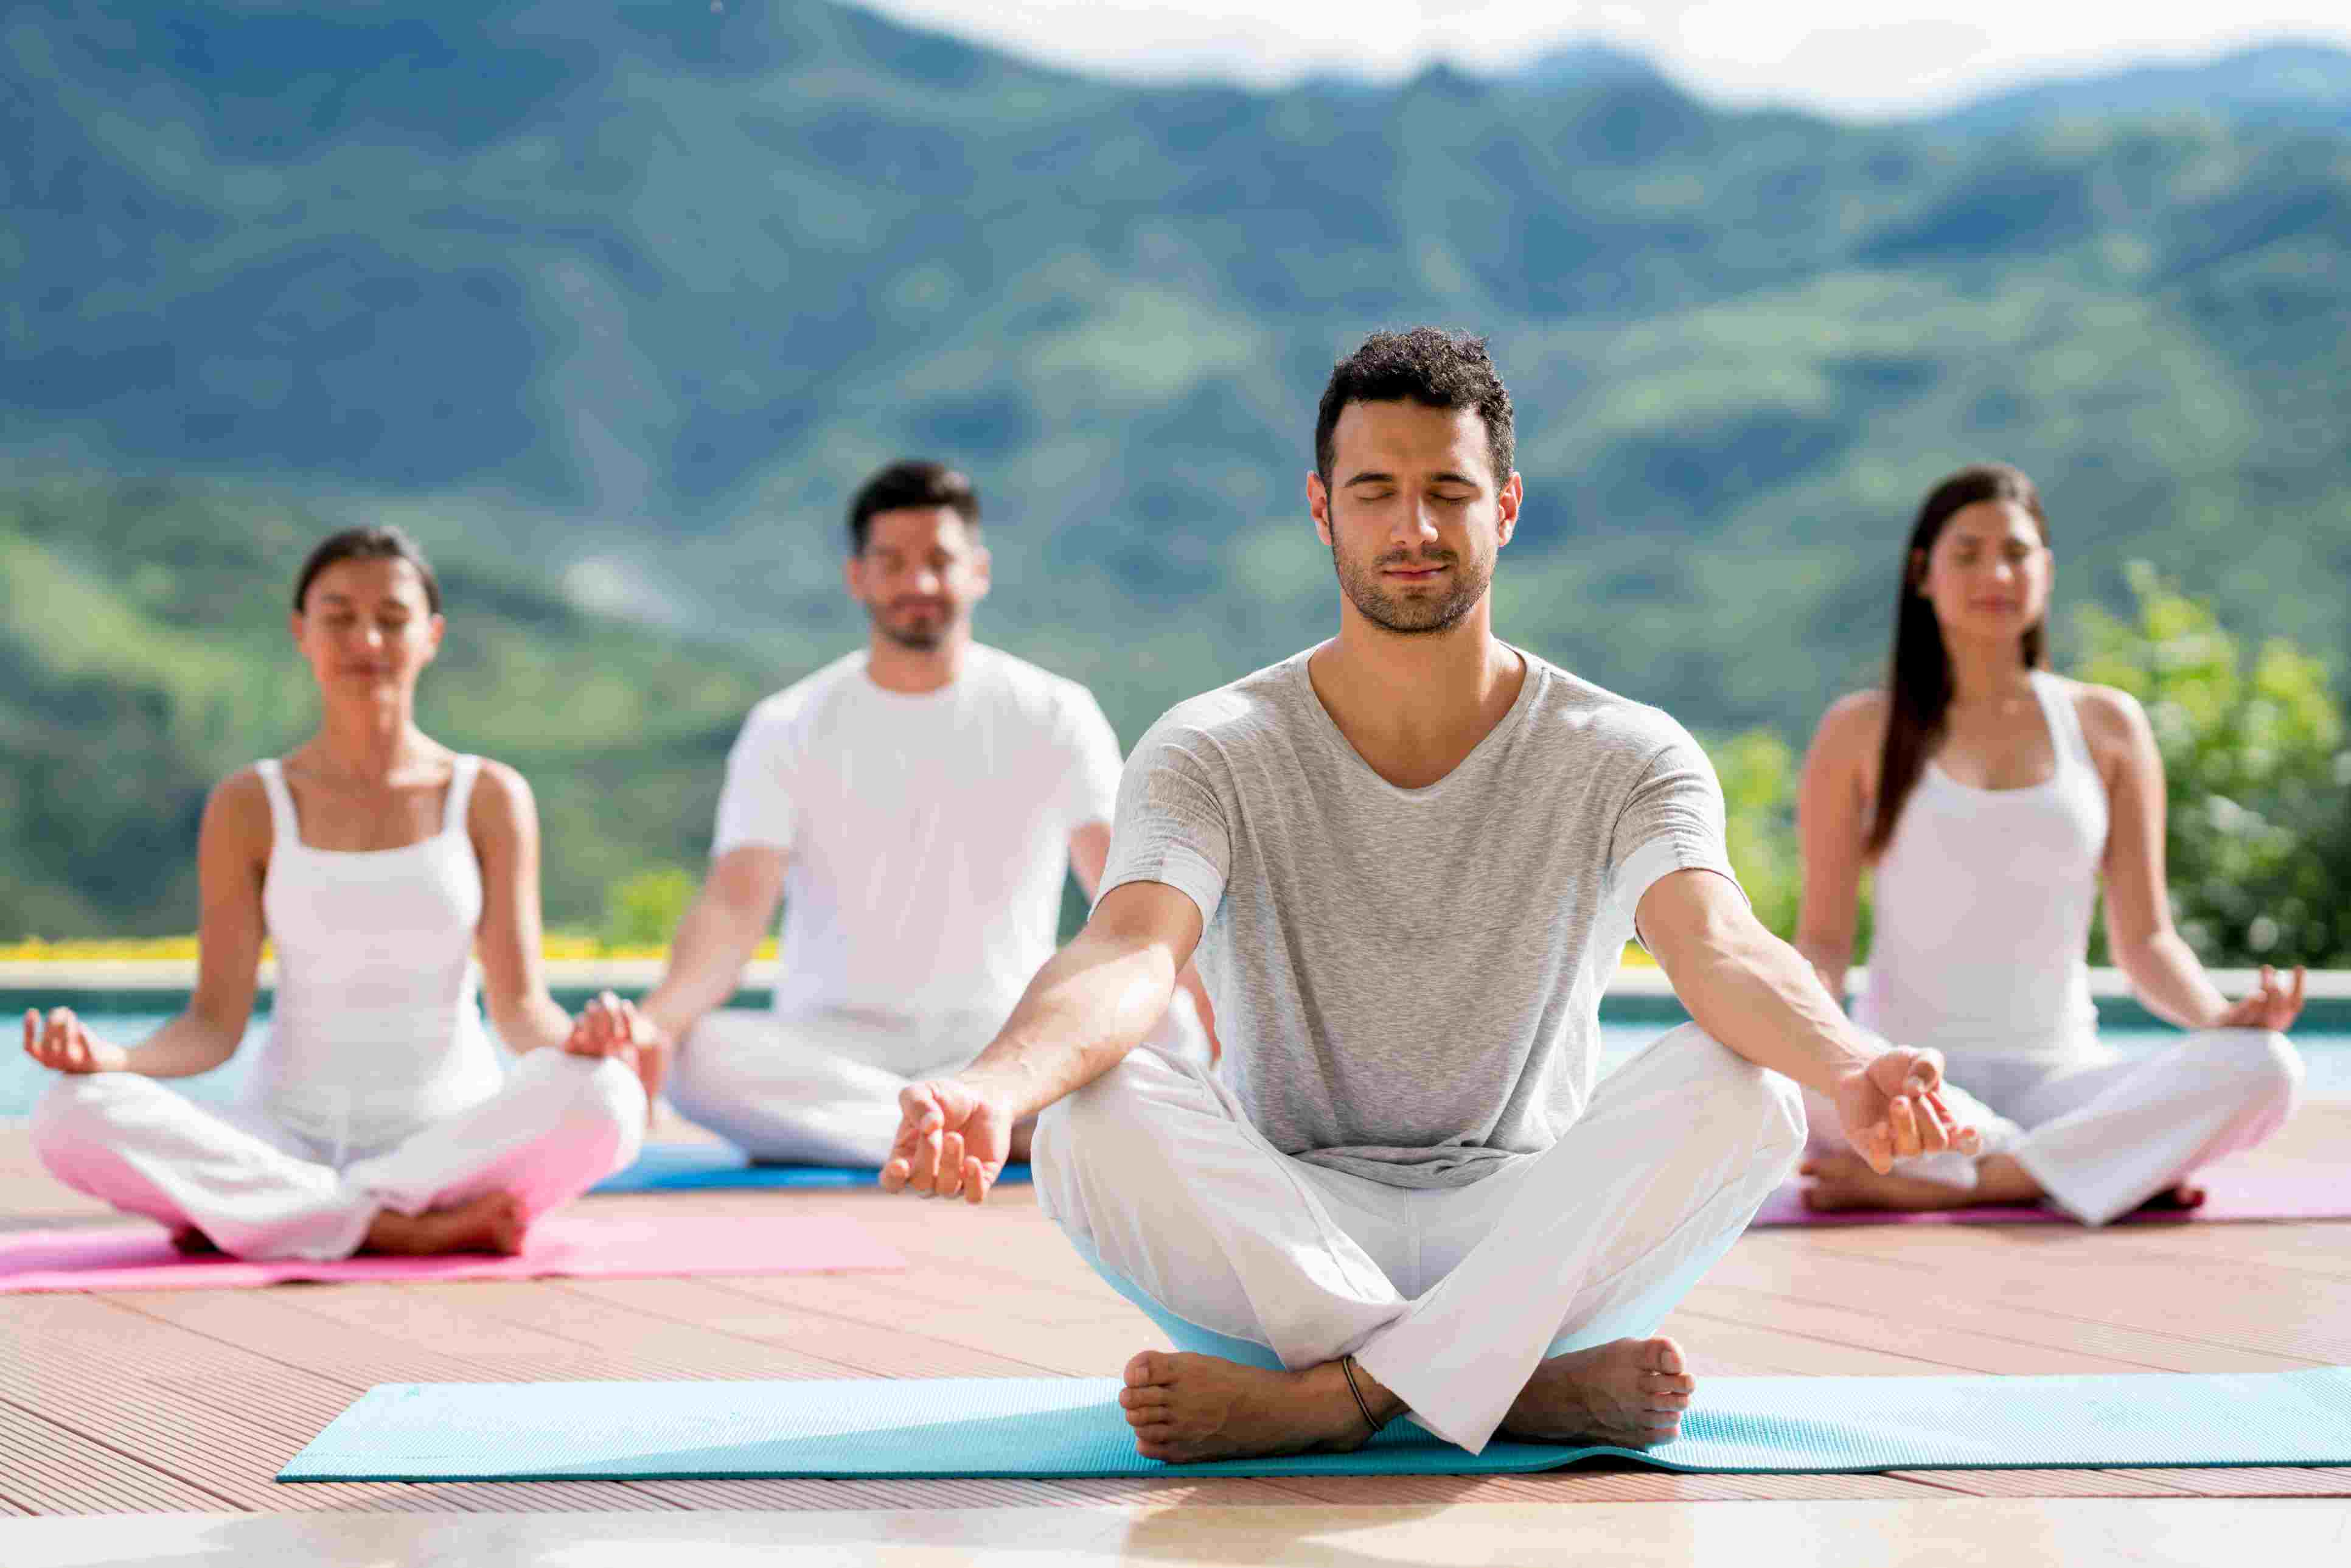 Group of people meditating in a yoga class